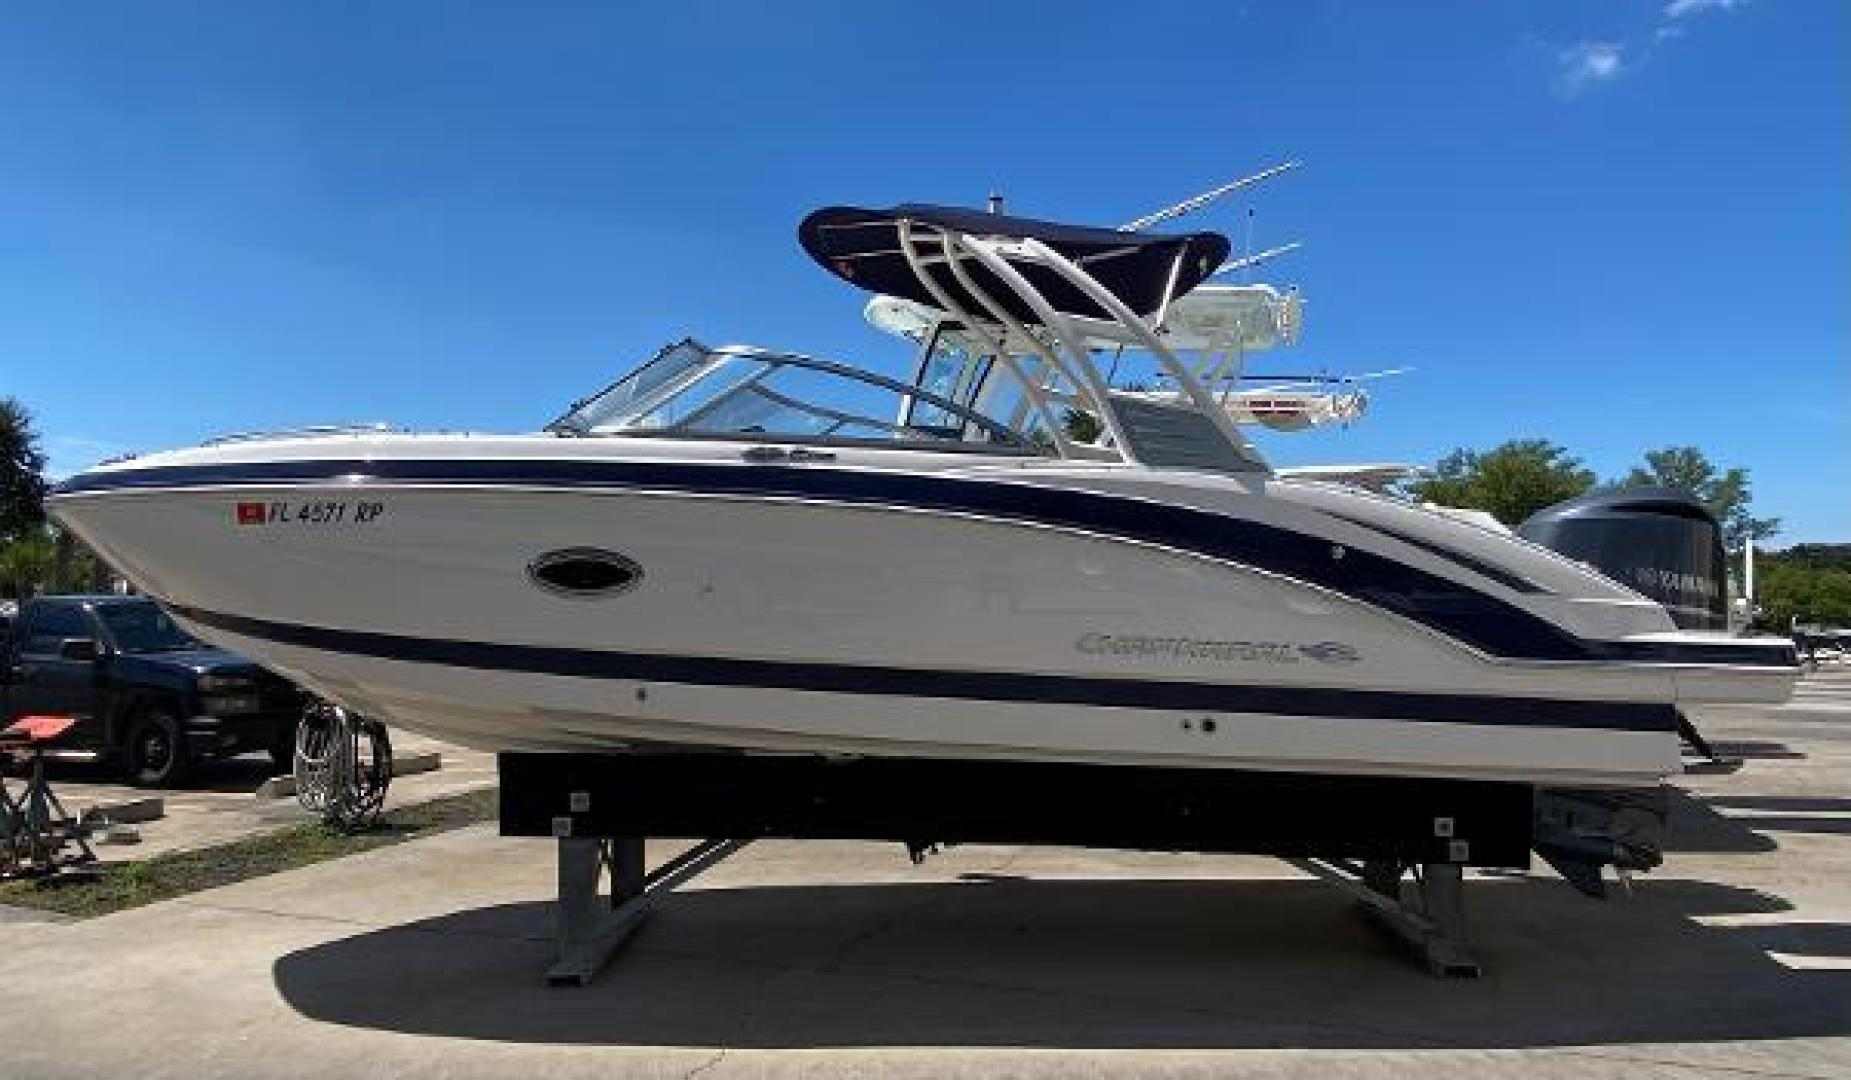 25ft Chaparral Yacht For Sale